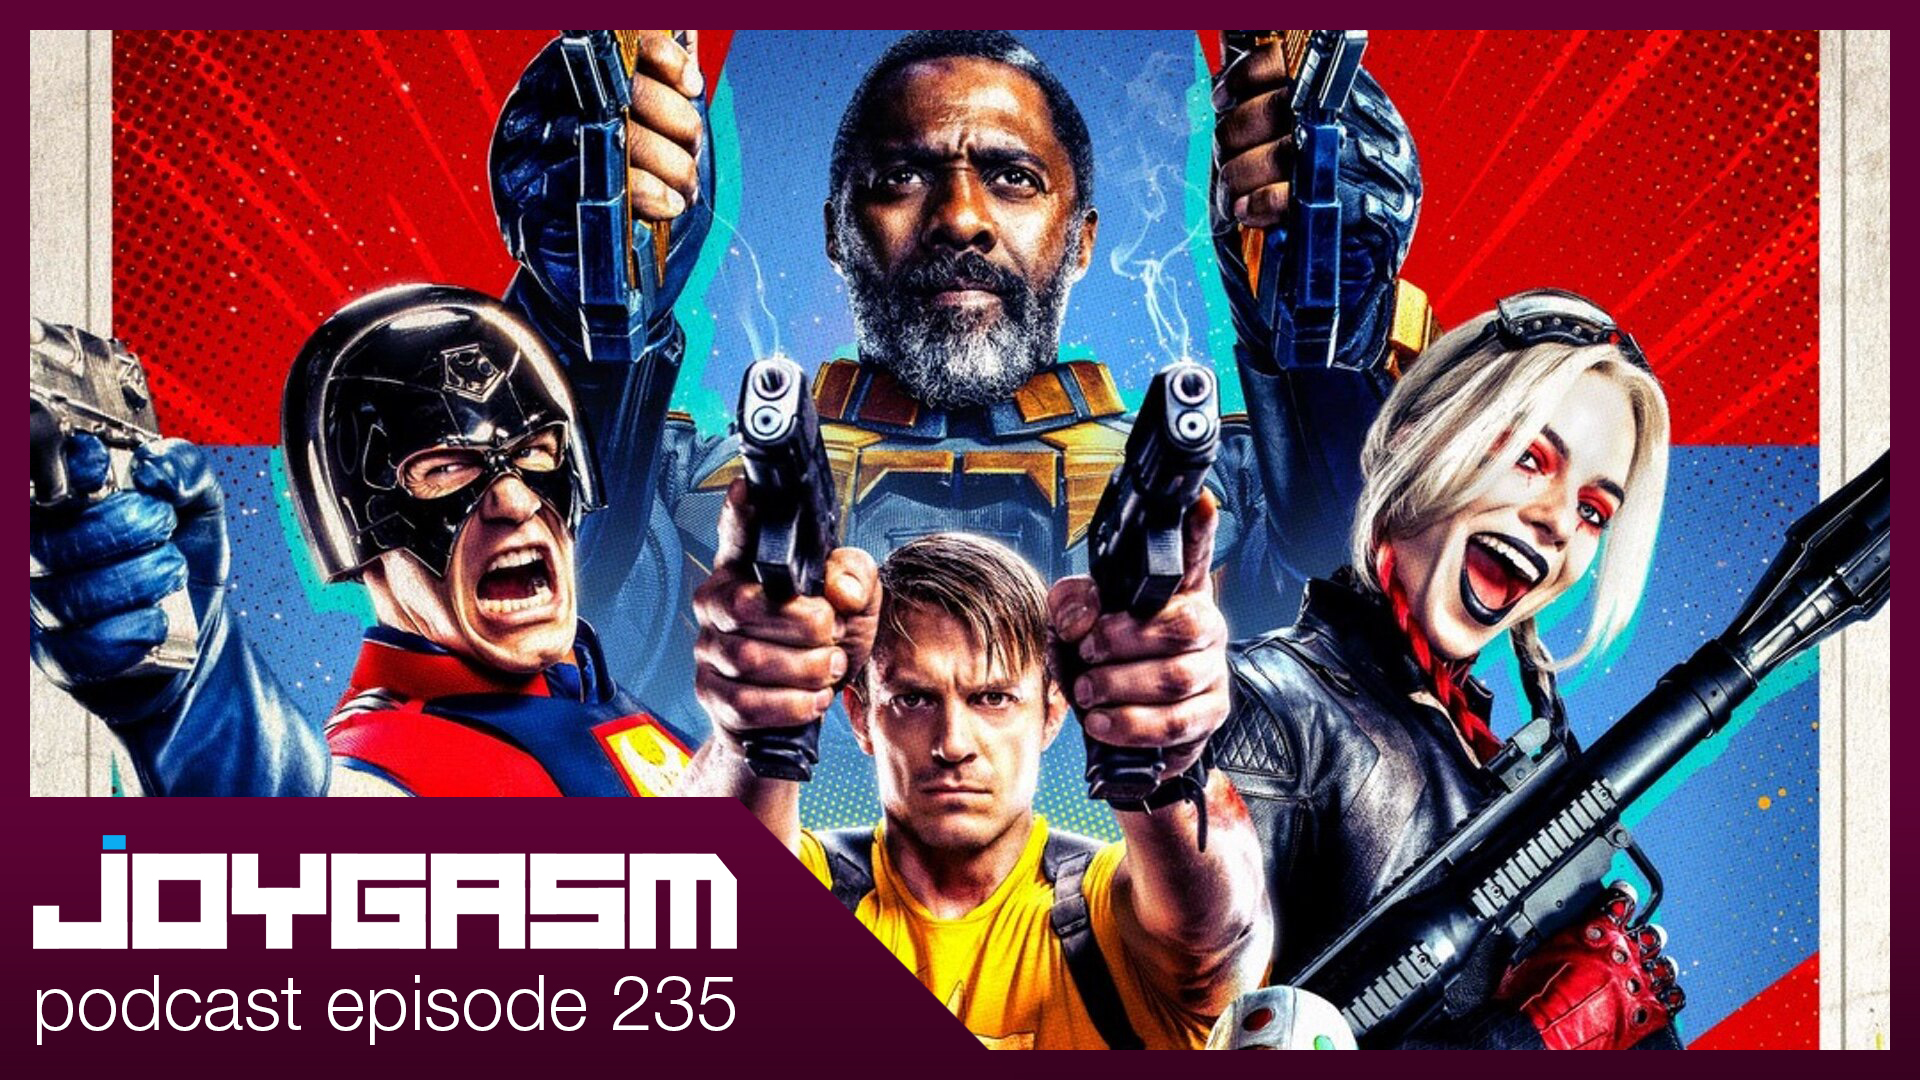 Ep. 235: The Suicide Squad Movie Review